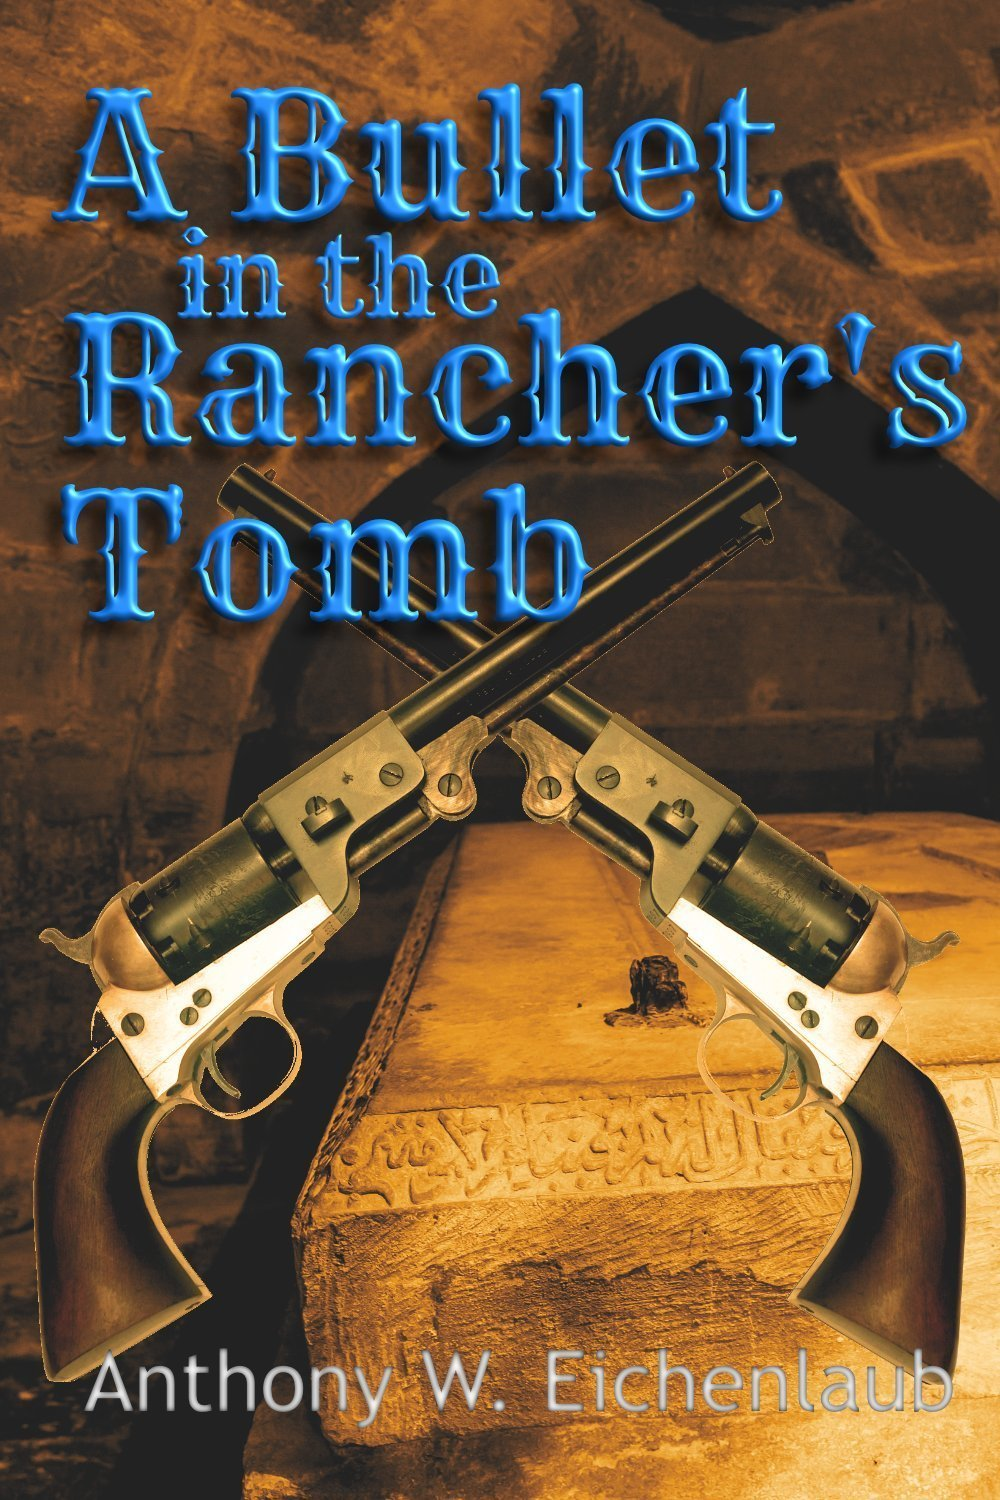 Two revolvers in a tomb